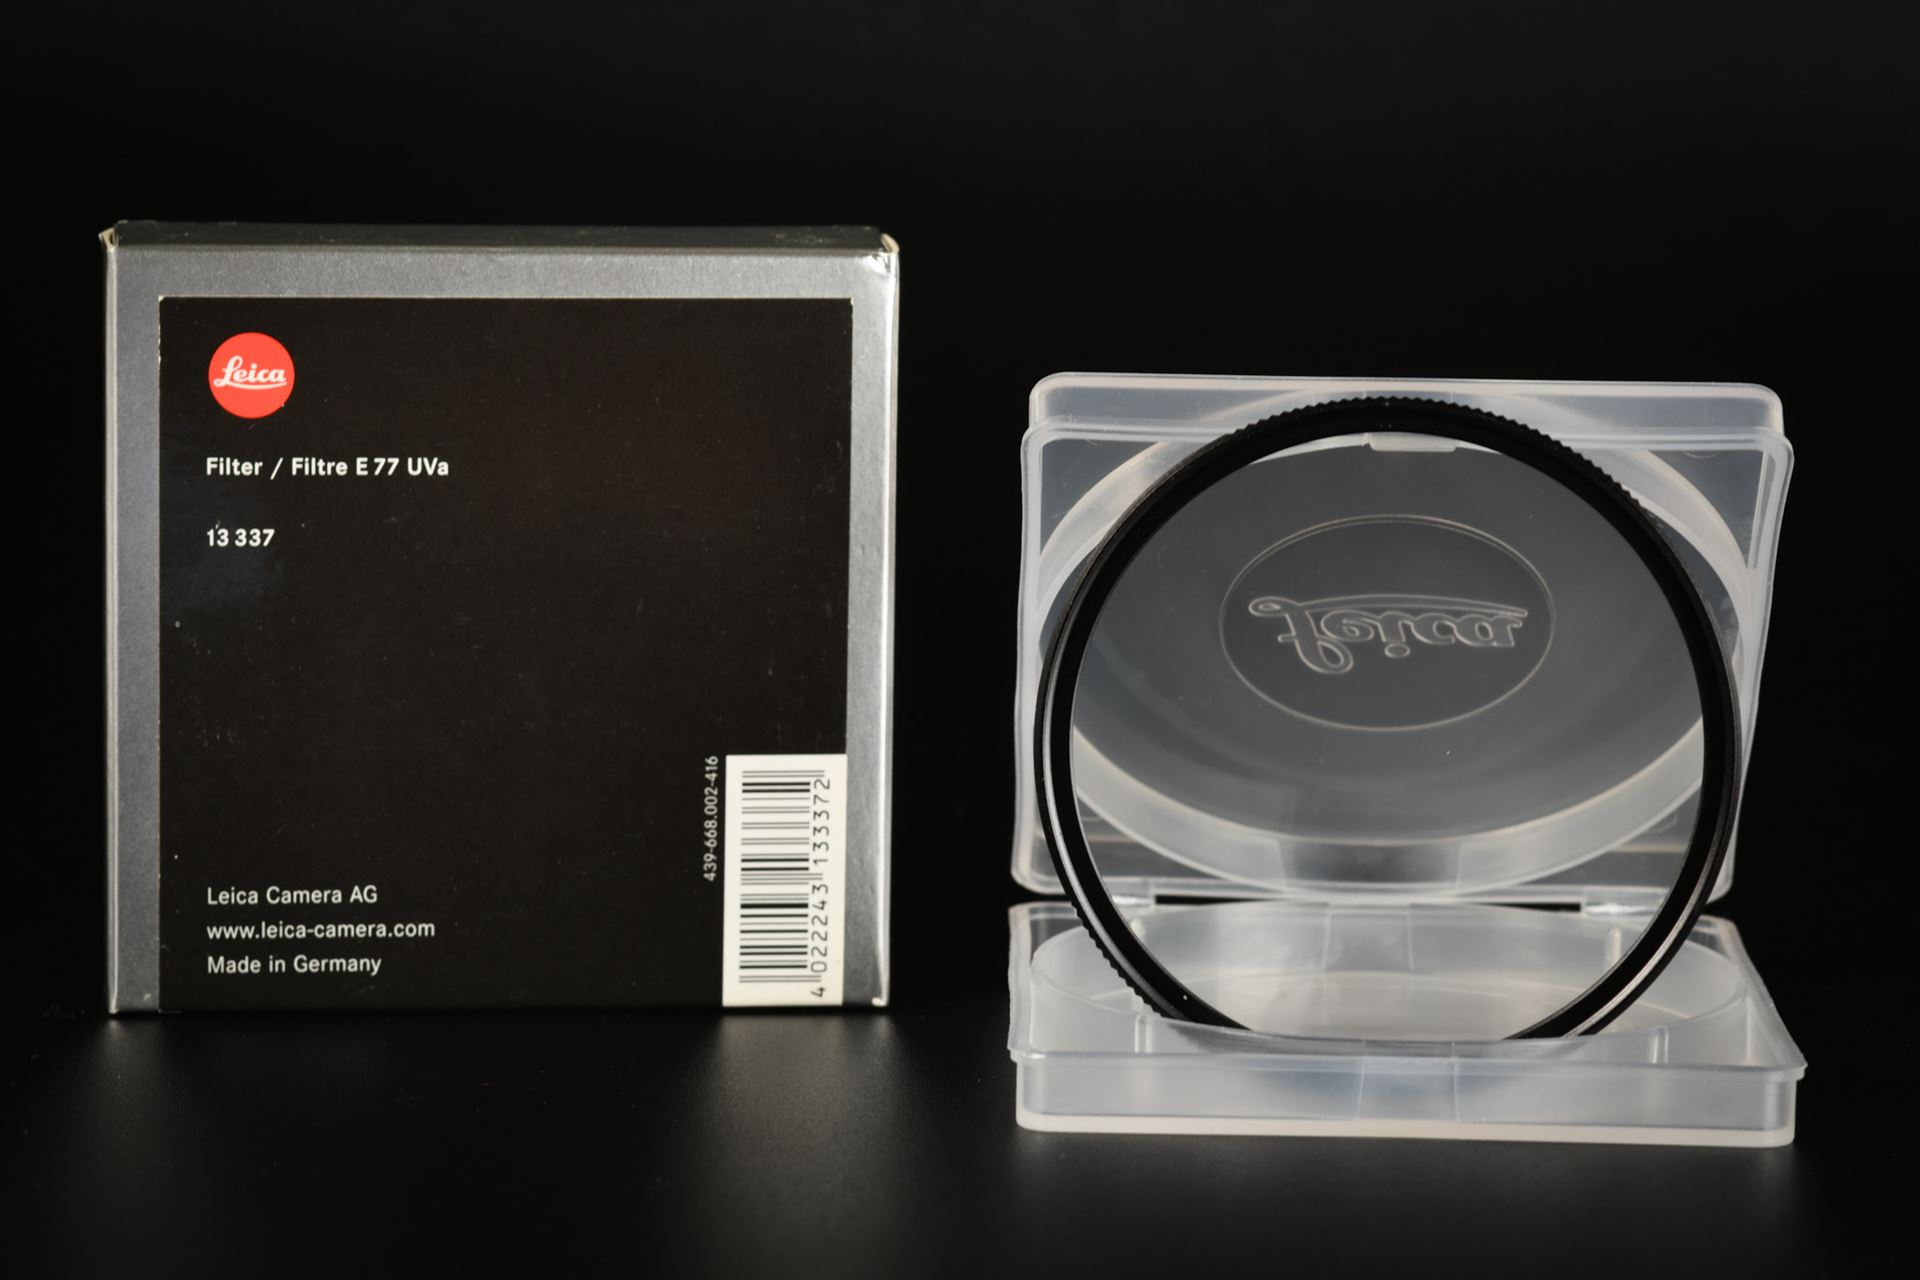 Picture of Leica E77 UVa 77mm Filter Black